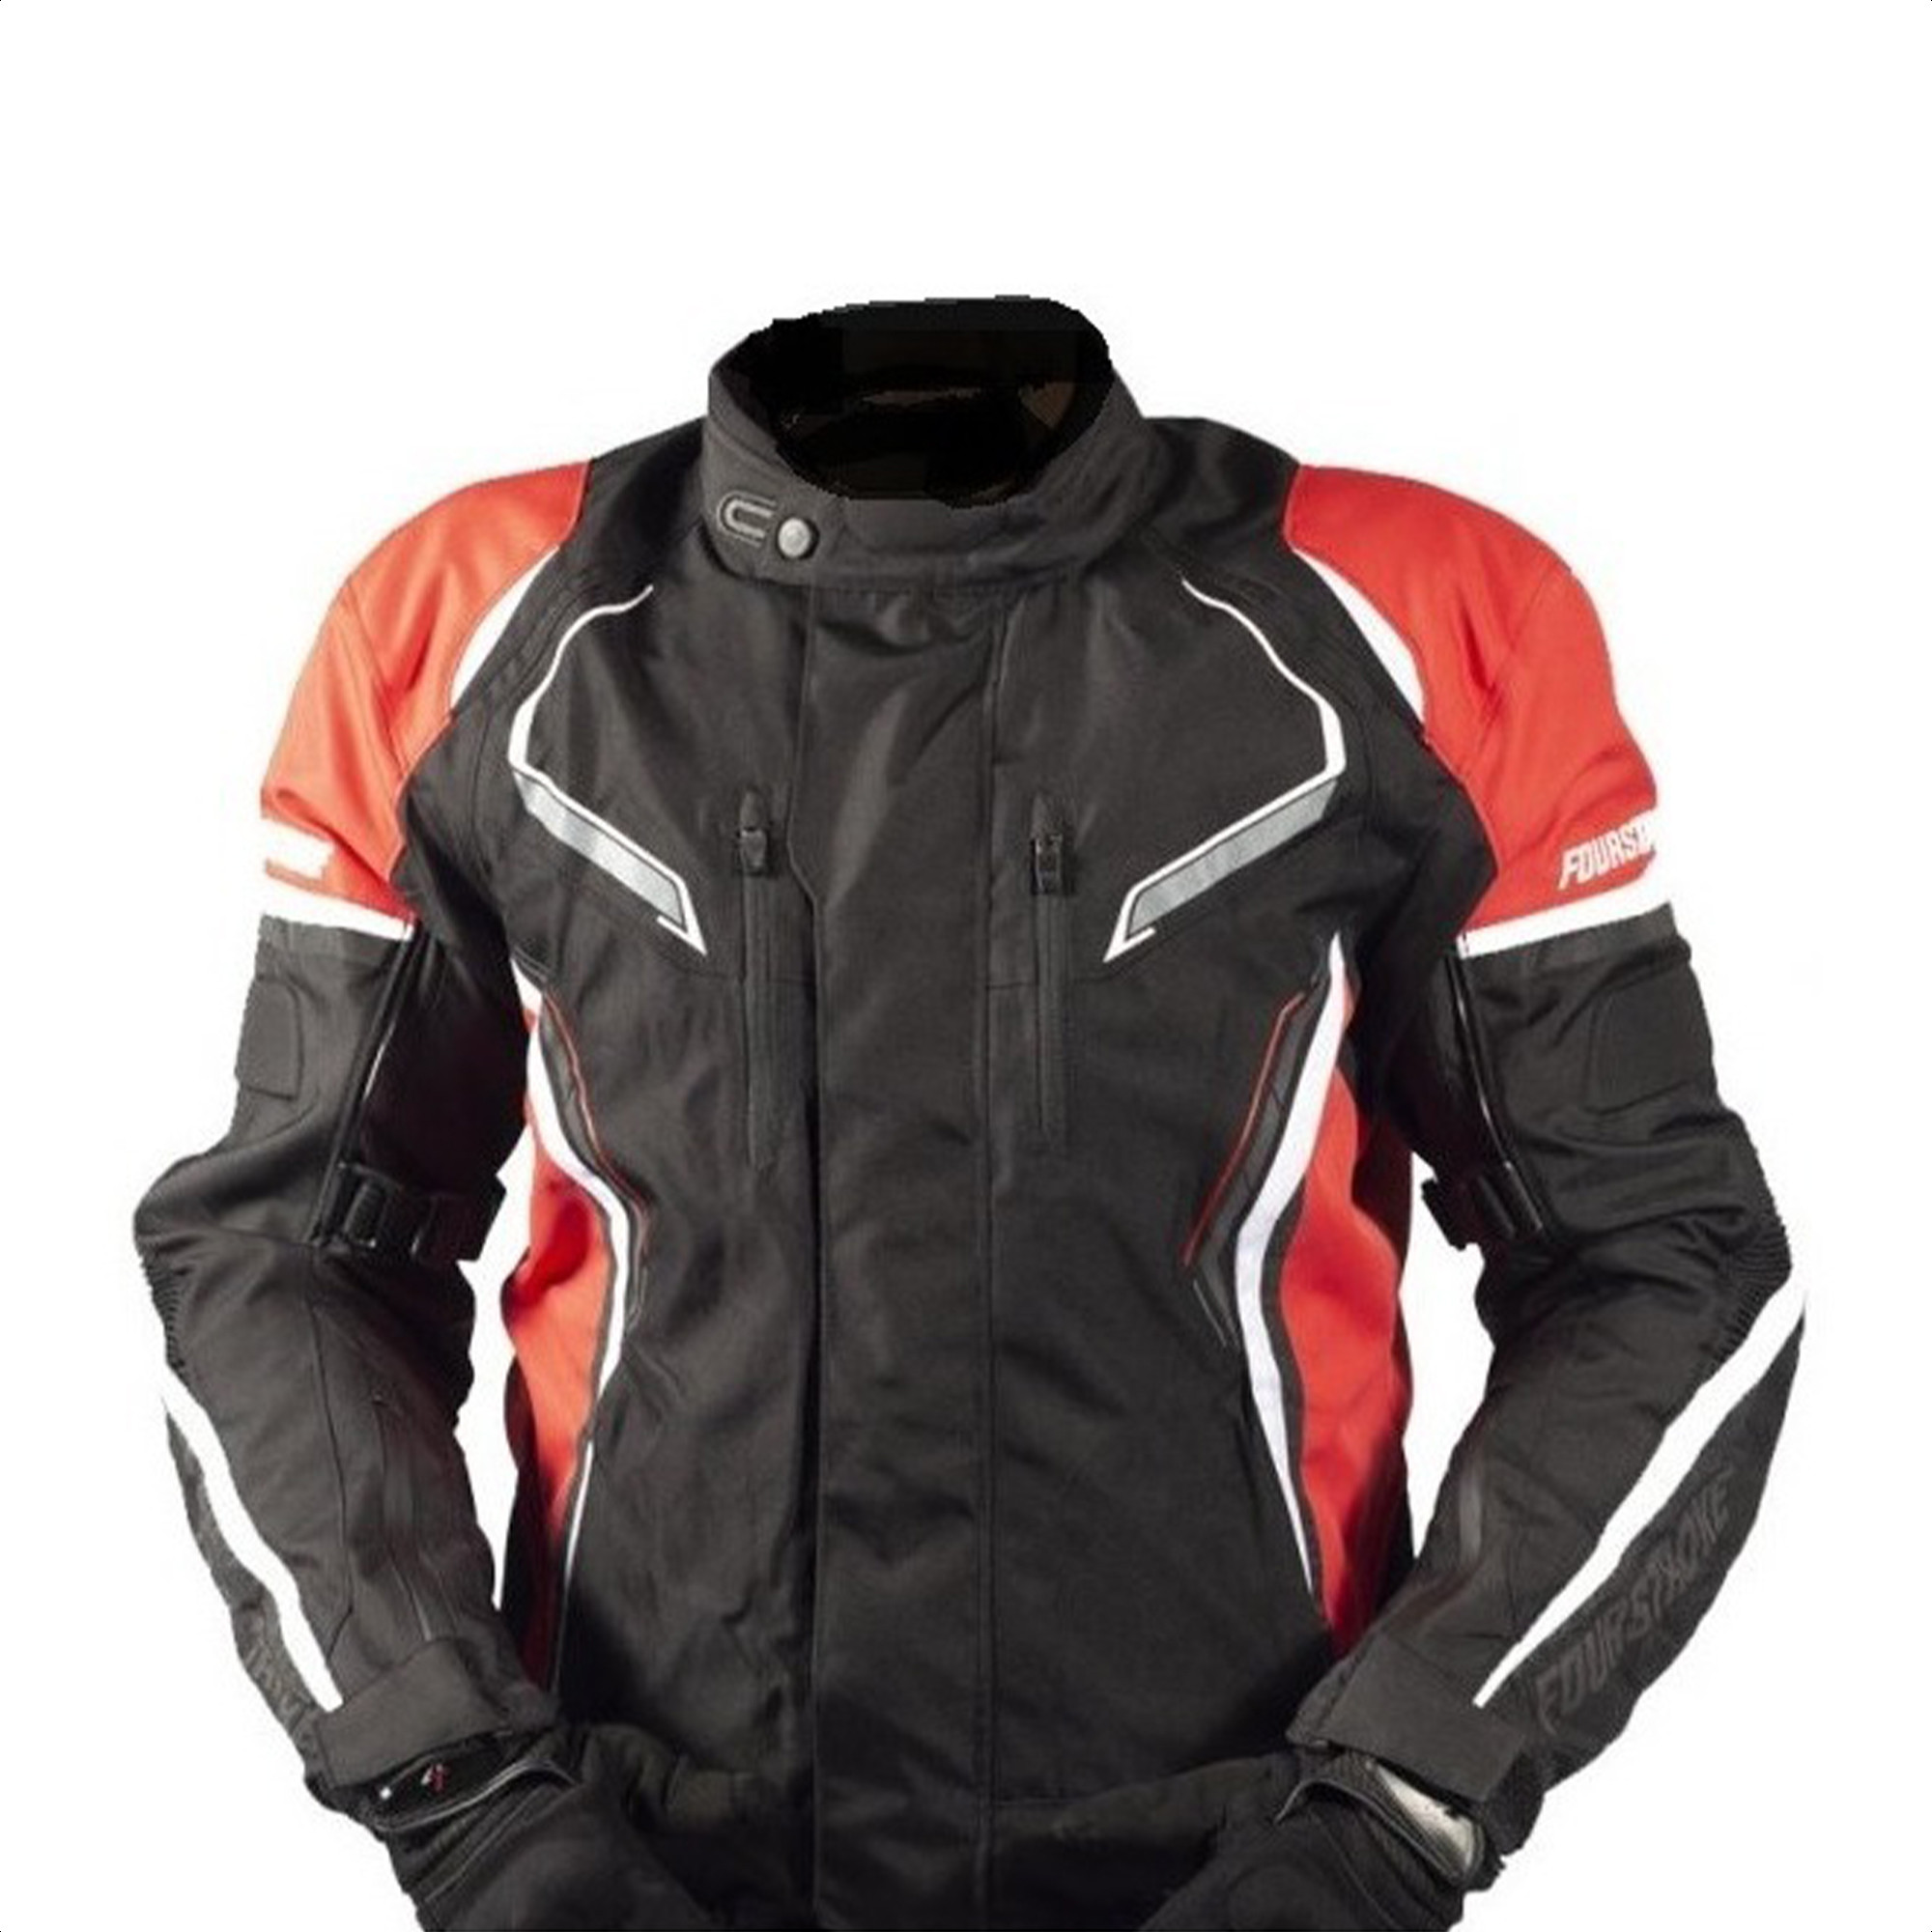 Campera 4 estaciones Fourstroke Assen